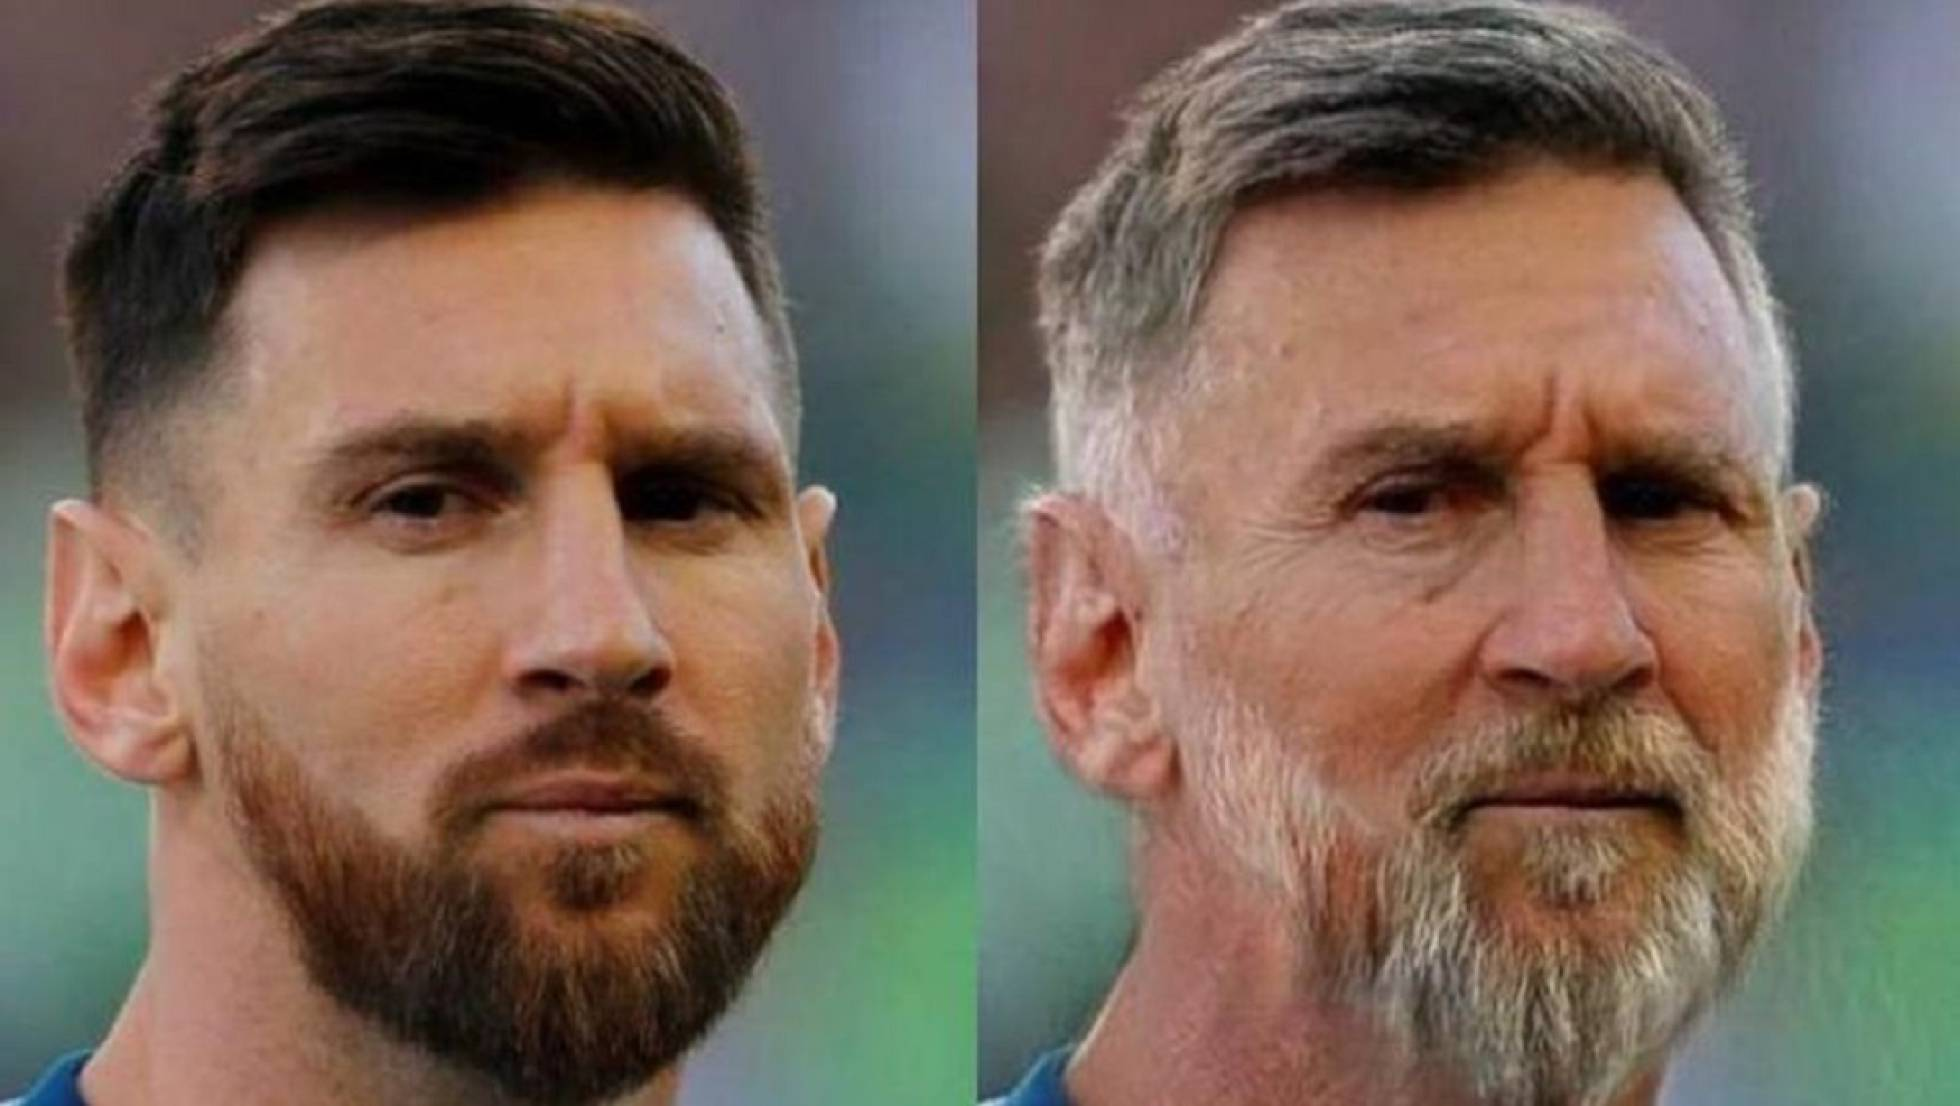 faceapp_messi.jpg (124.55 Kb)